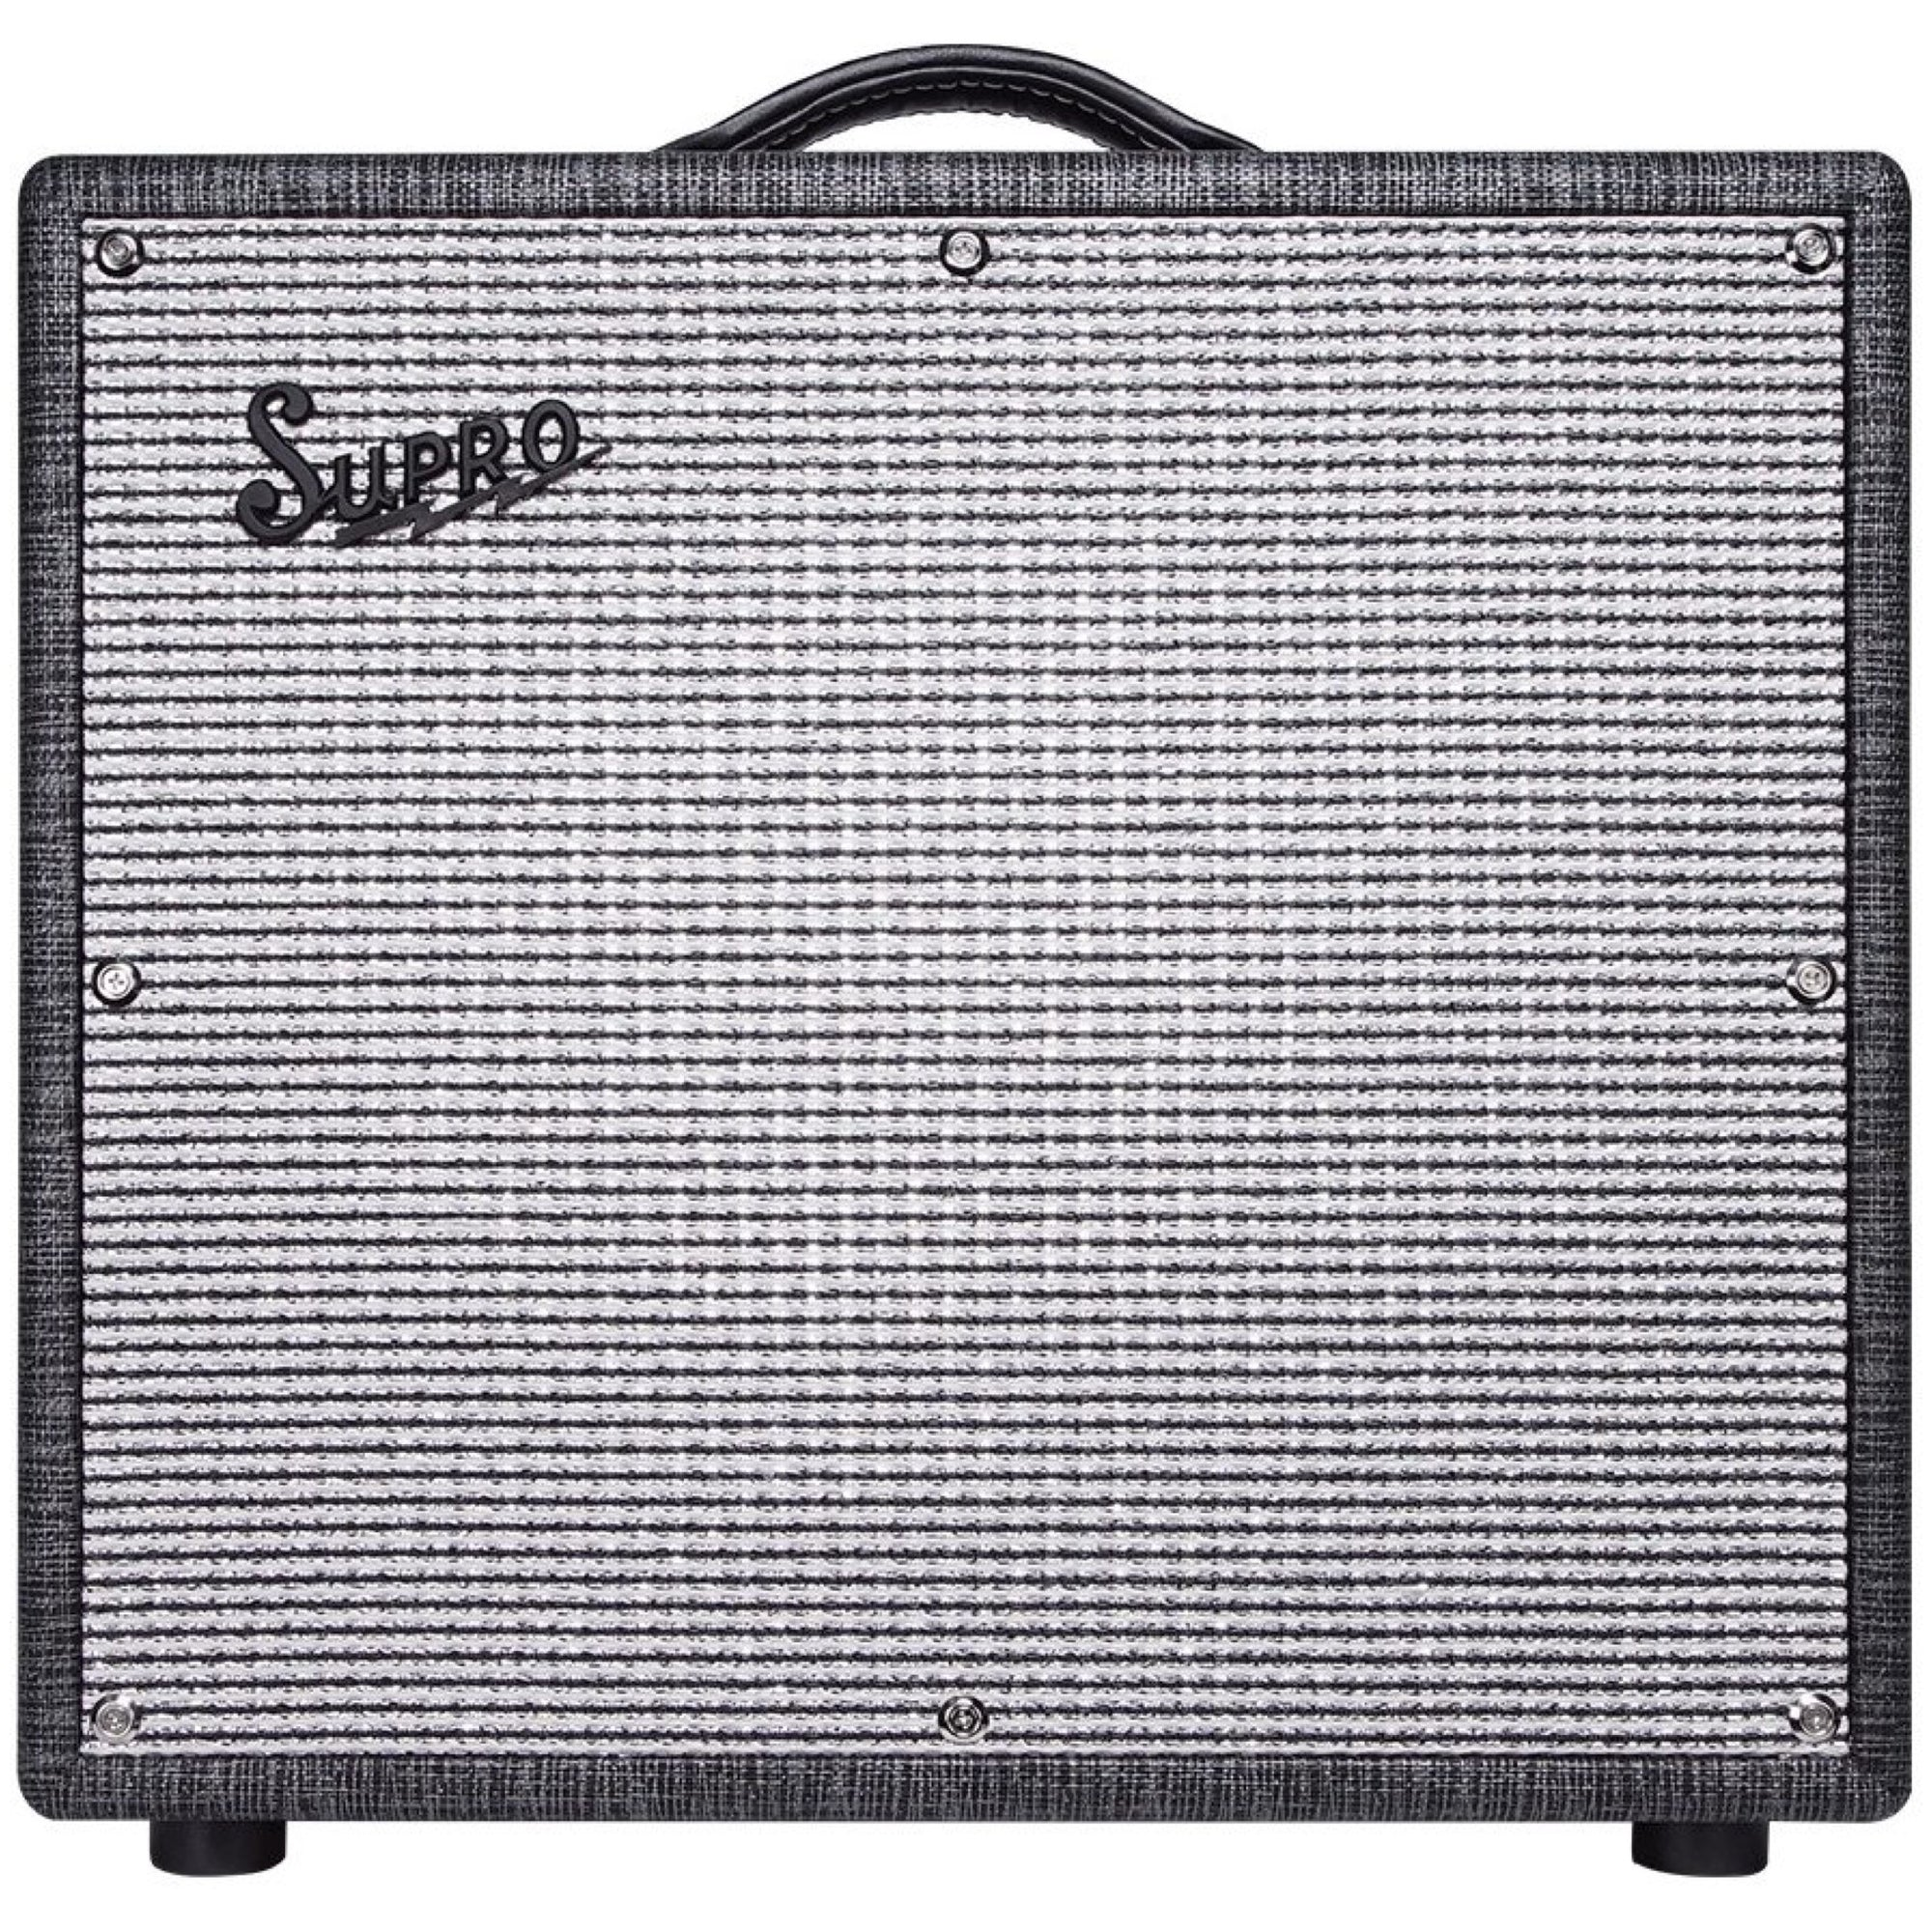 Supro Black Magick Reverb Guitar Combo Amplifier (25 Watts, 1x12 Inch)